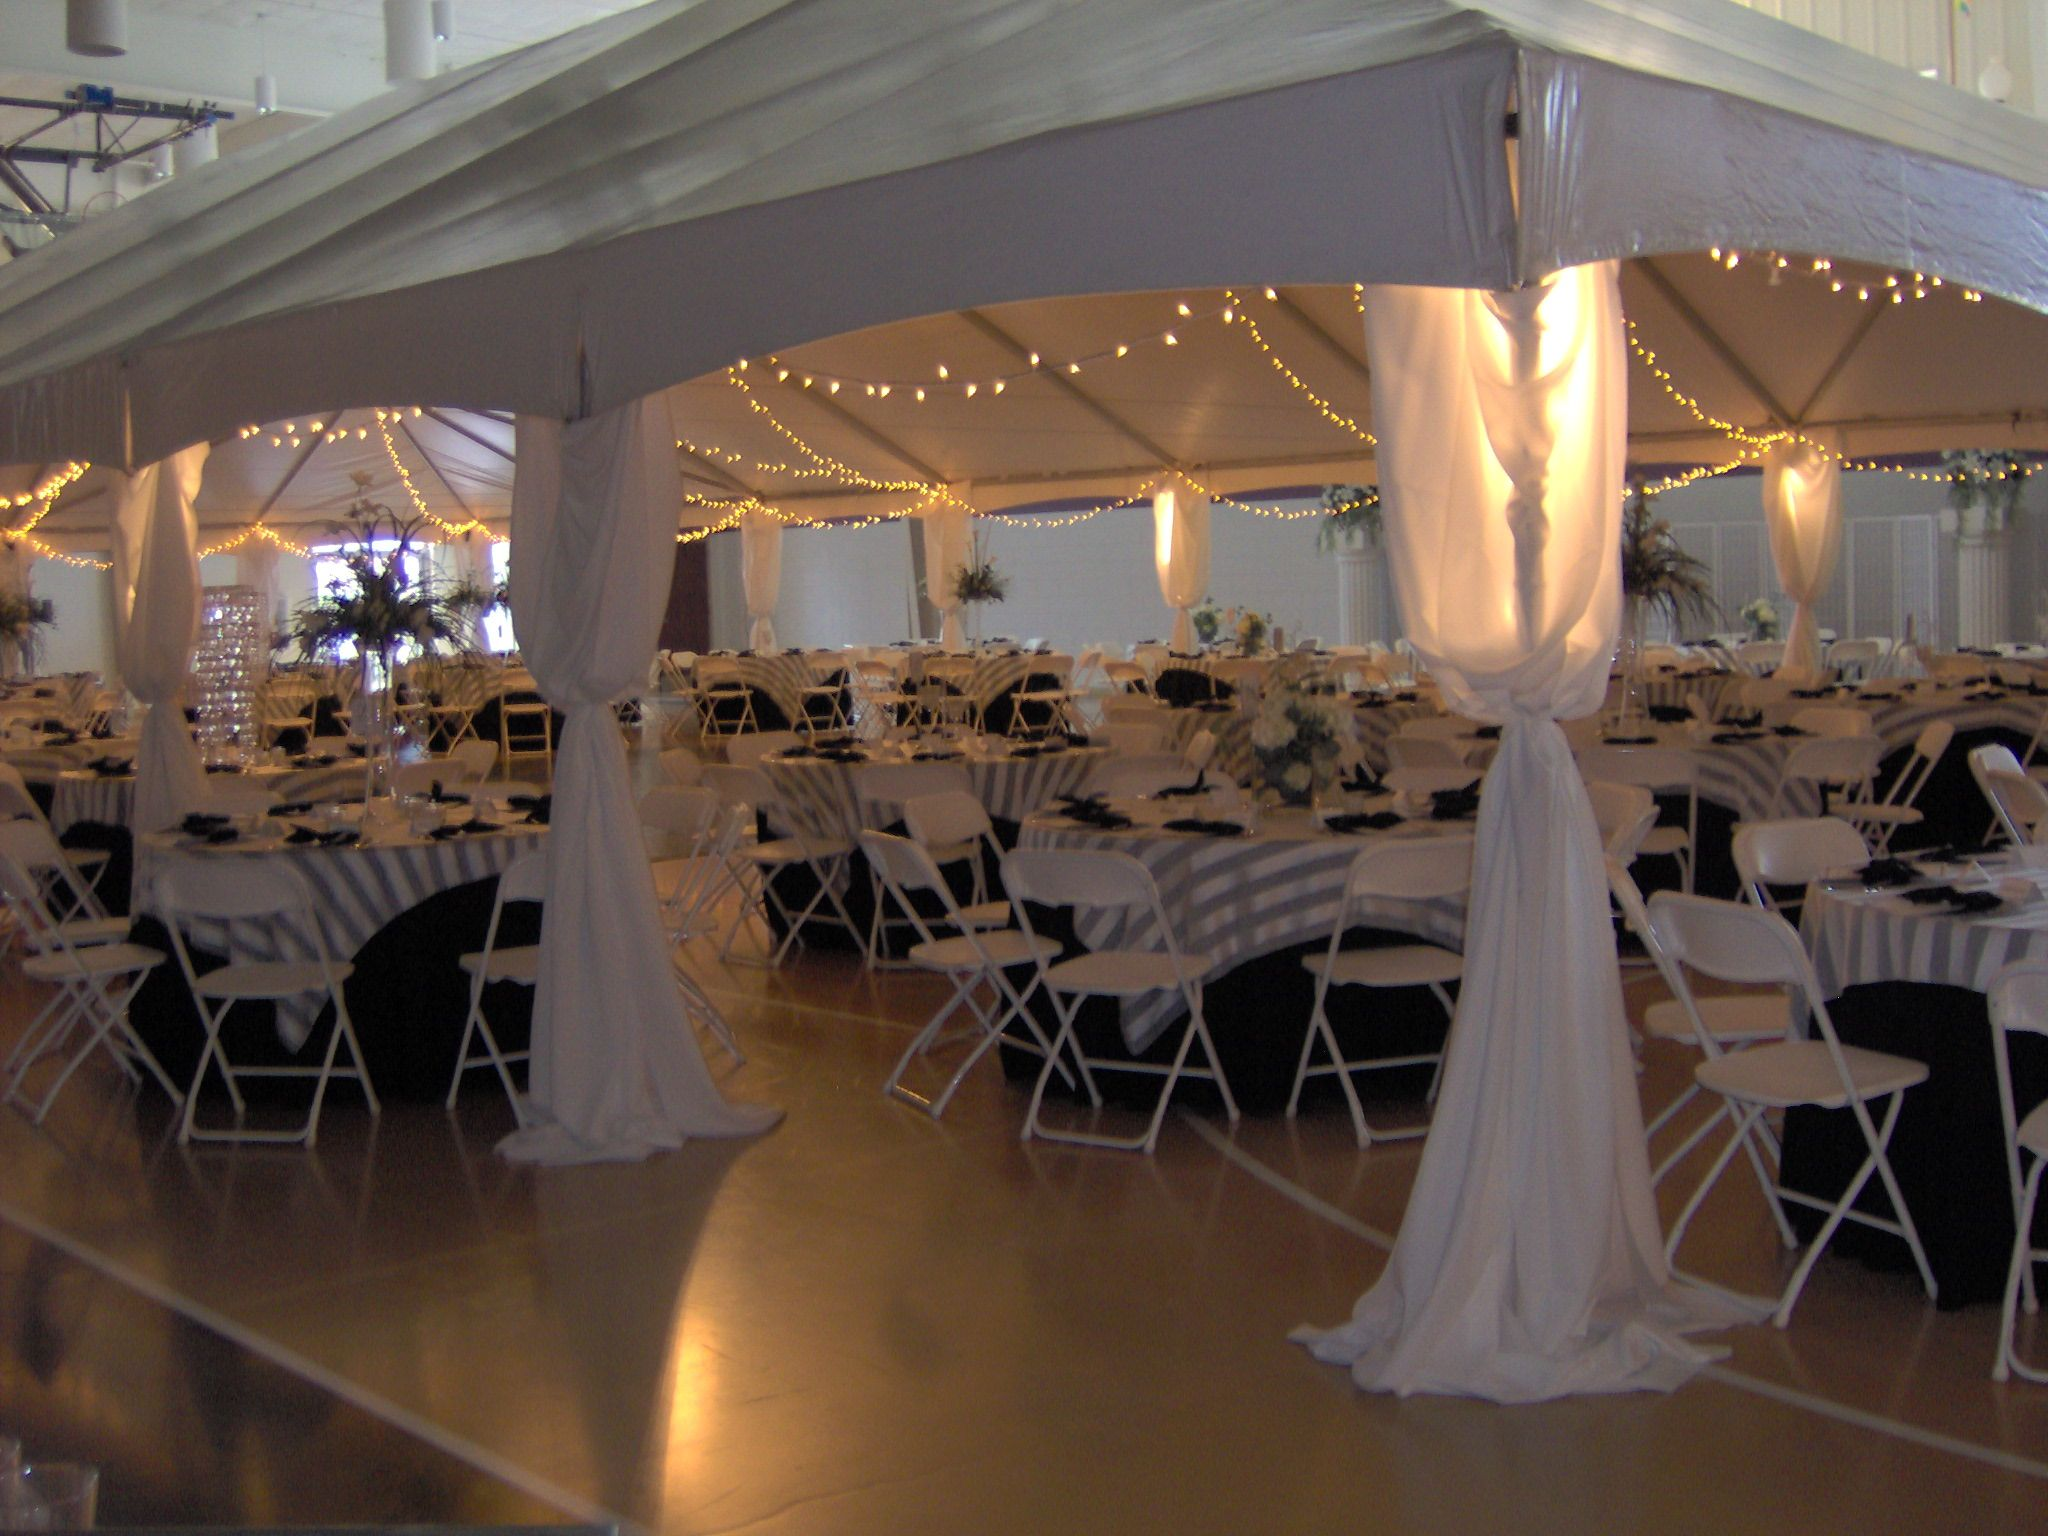 Tents can be set up inside to define a space--such as this